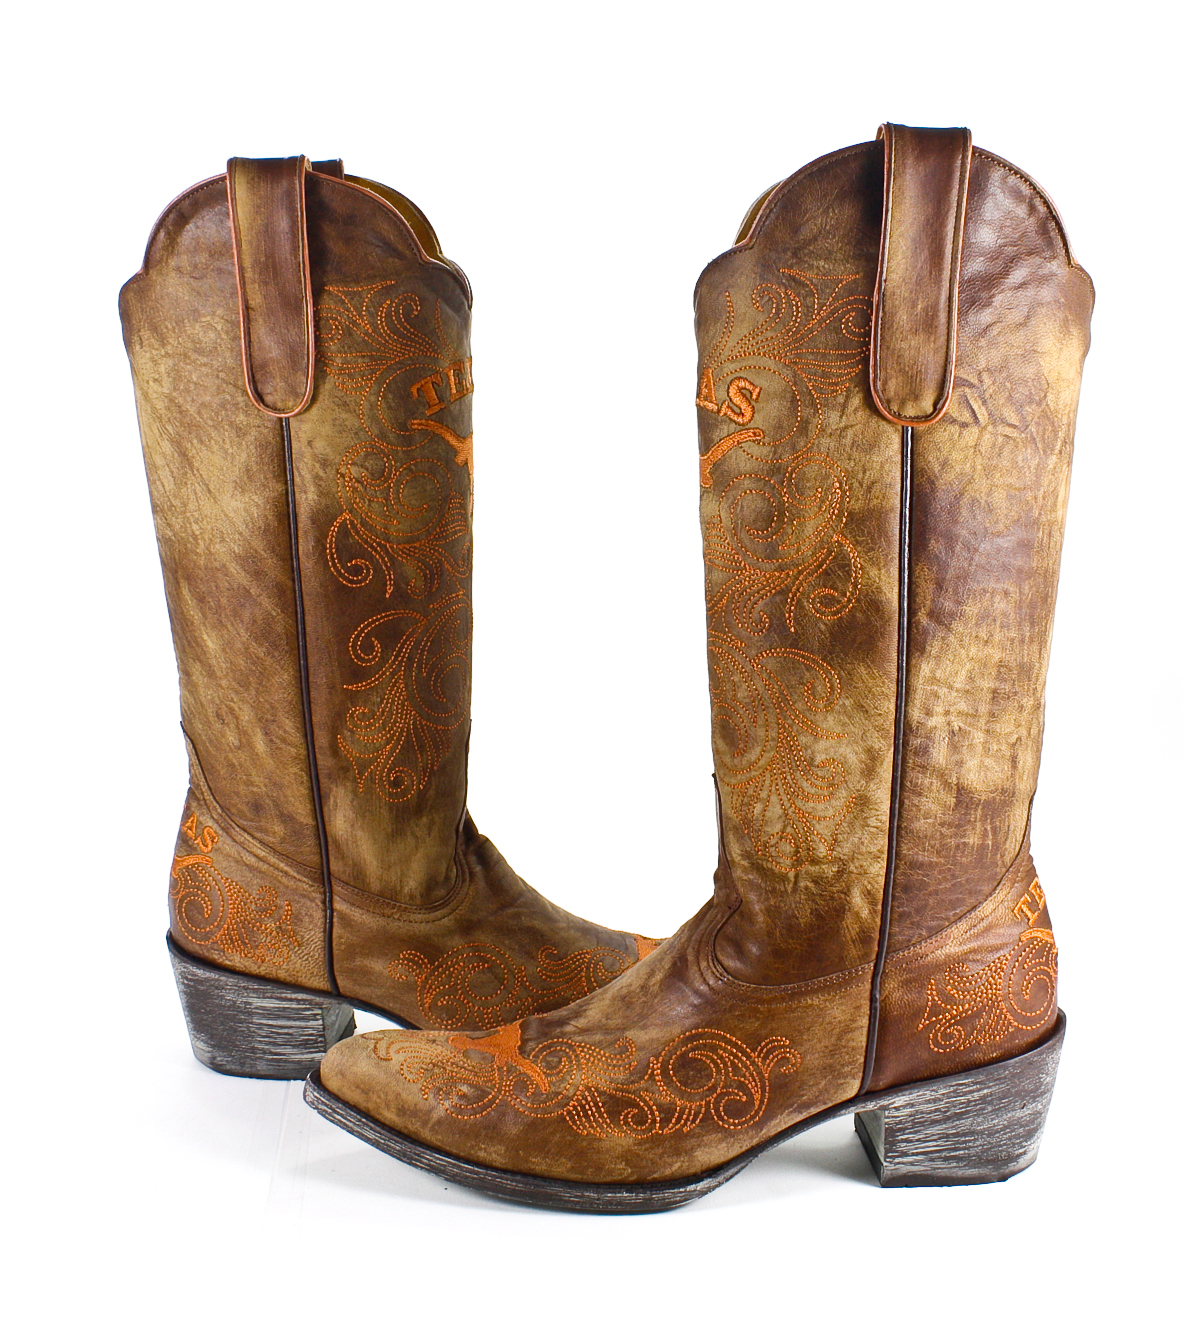 Popular When You Think Of Cowboy Boots, Dont You Think Of Texas? But Here I Am In Minnesota, Building Boots For People In Texas, Buster Said Closer To Home, Rick Van Buren Has Bought Five Pairs From Buste